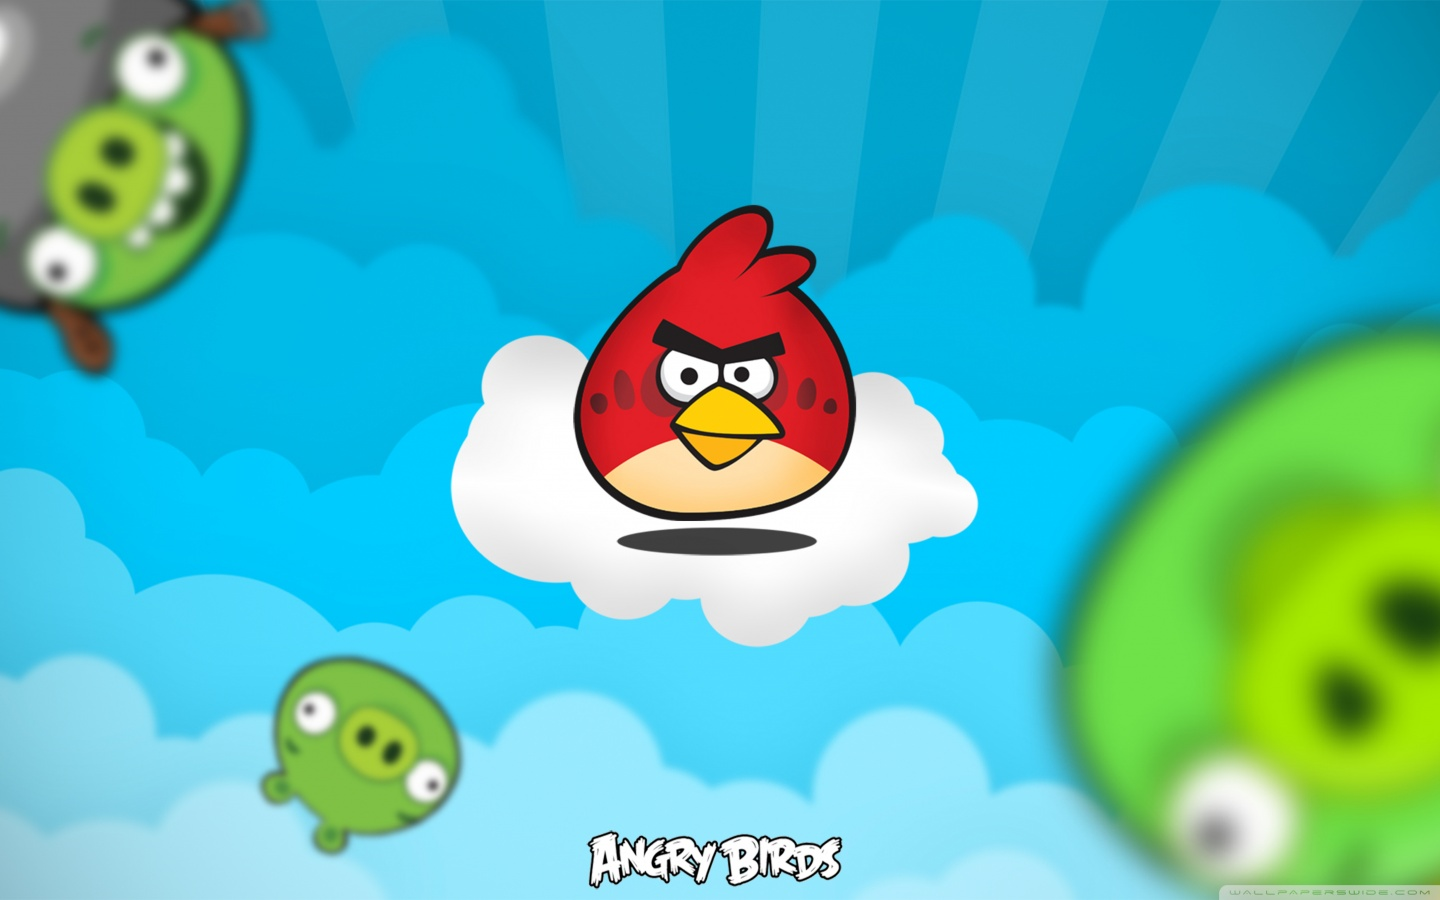 Angry Birds HD desktop    Widescreen   High Definition HD Wallpaper